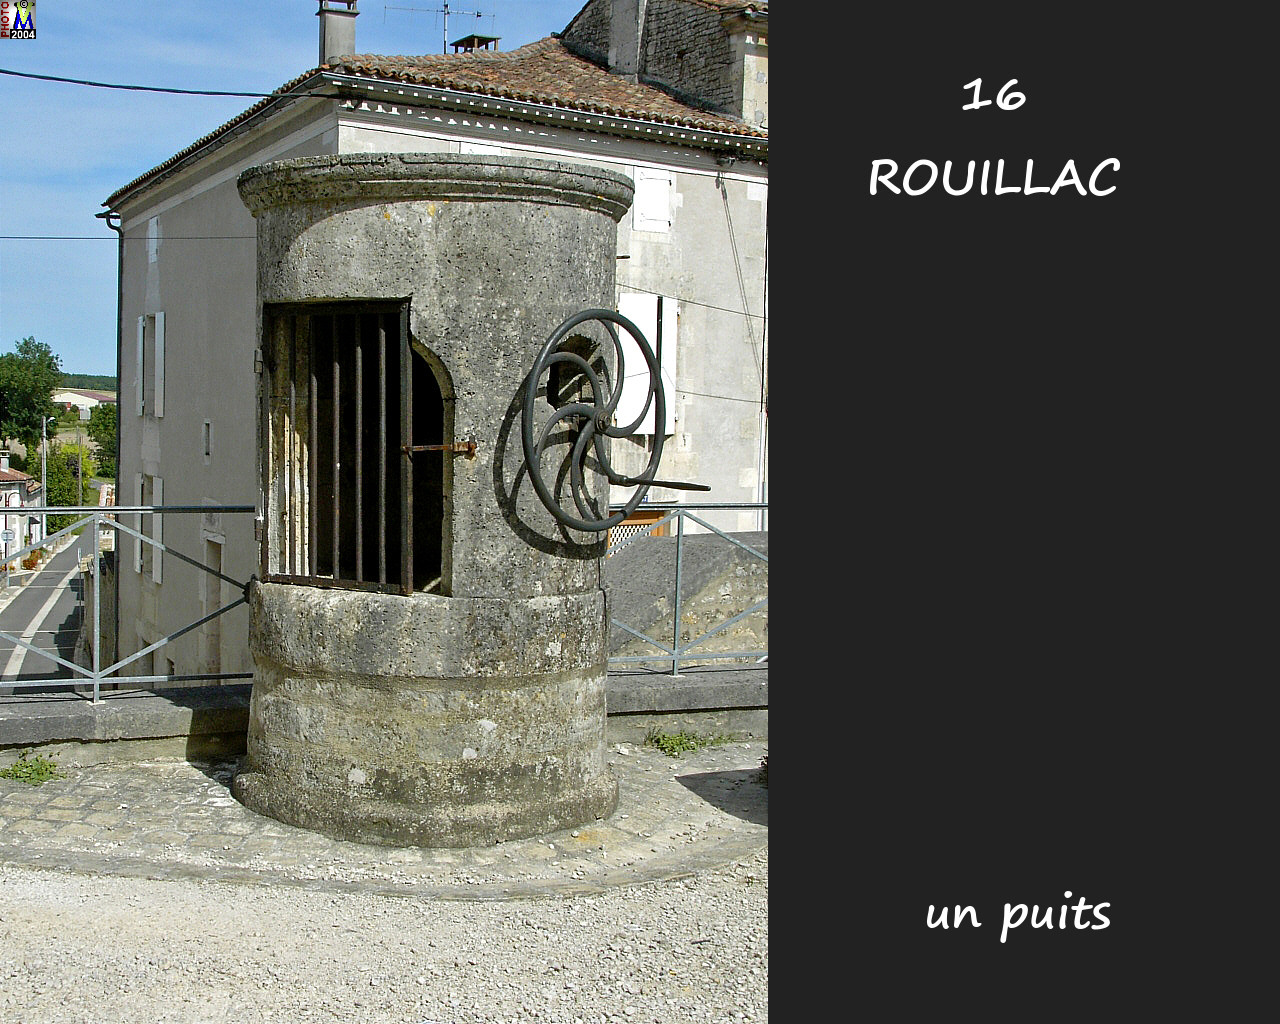 16ROUILLAC puits 100.jpg